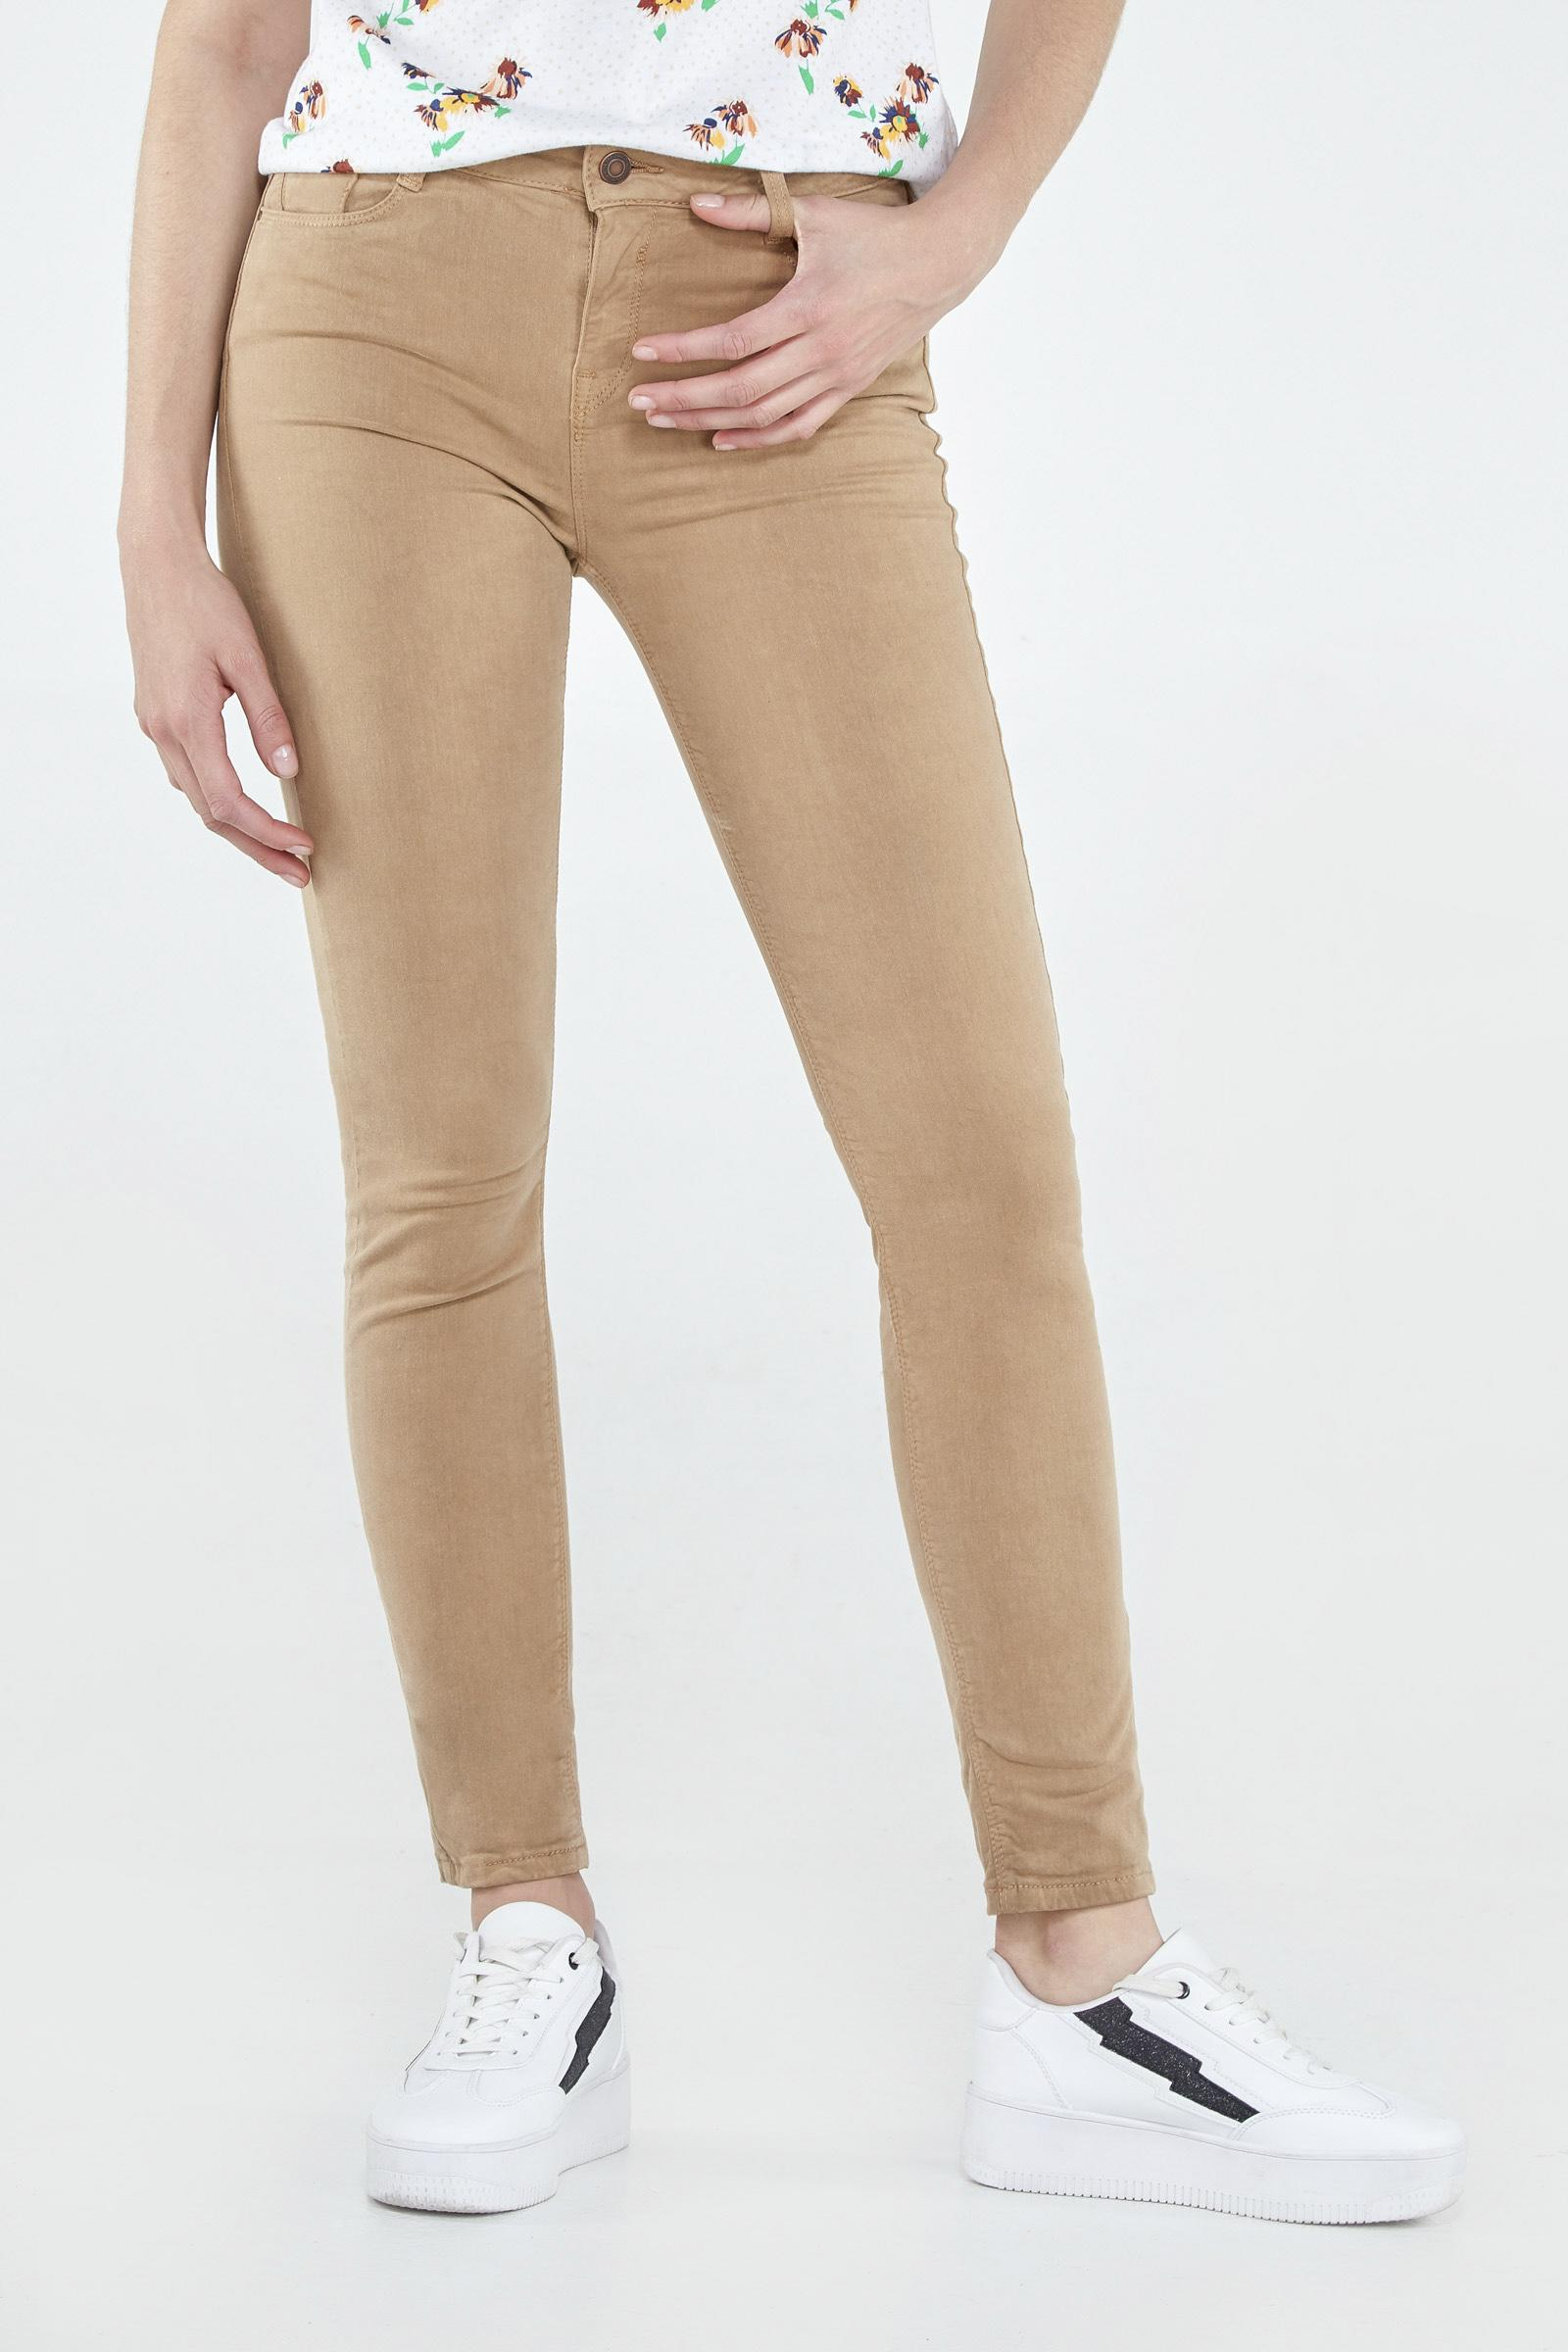 KOAJ-PANTALON KOAJ DRILL JEGGING TM 10 4/19